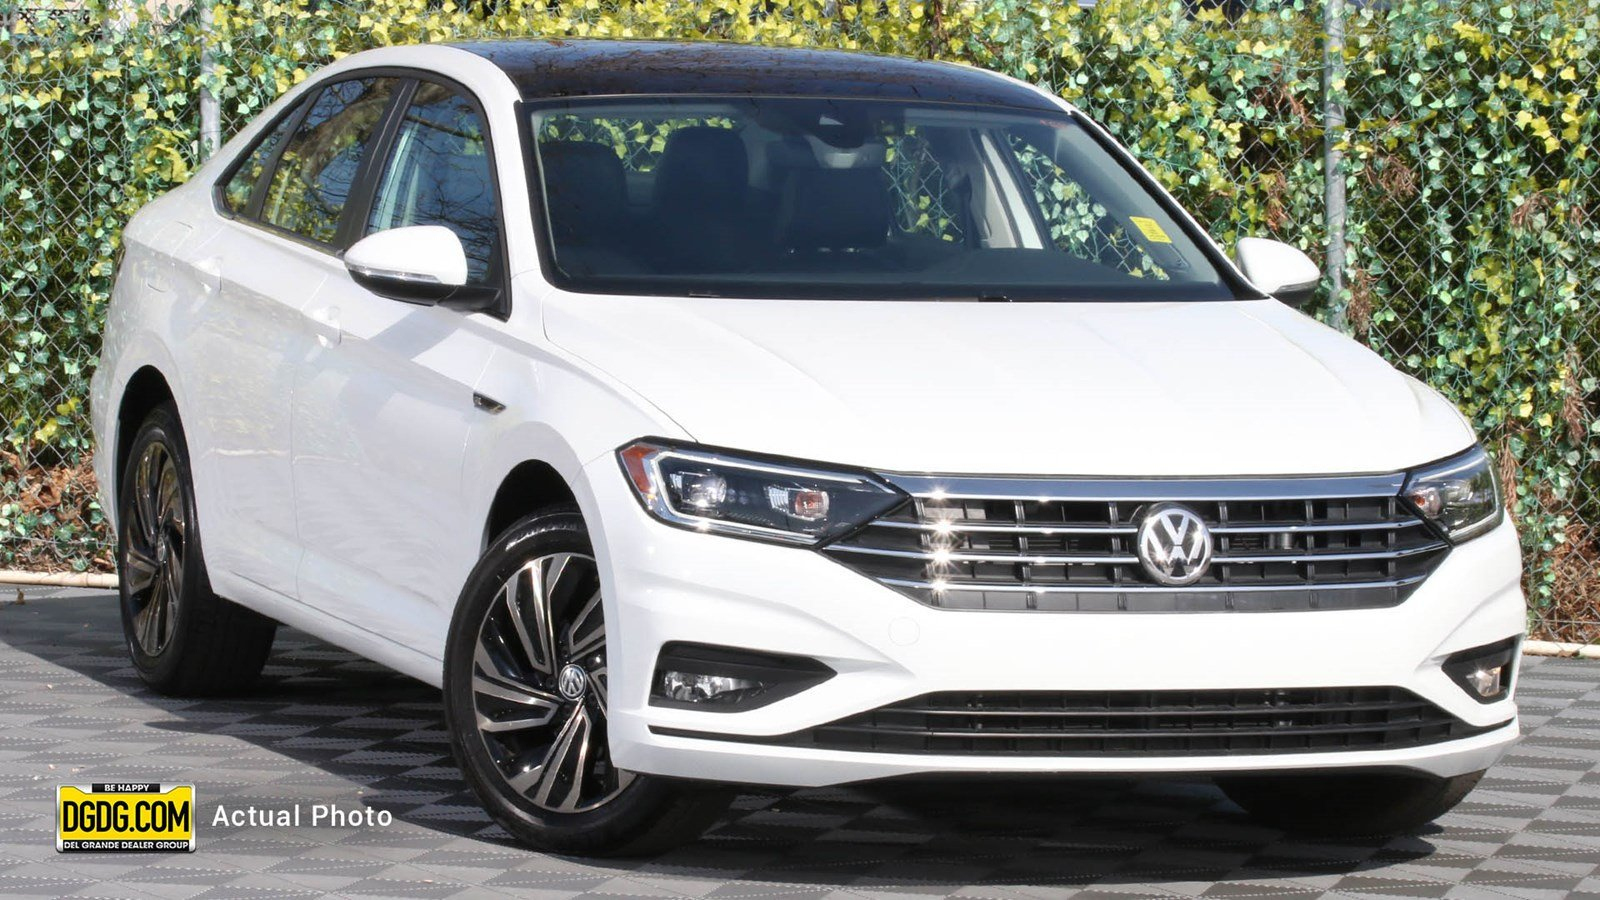 New 2021 Volkswagen Jetta Sel Premium Review Price Oil